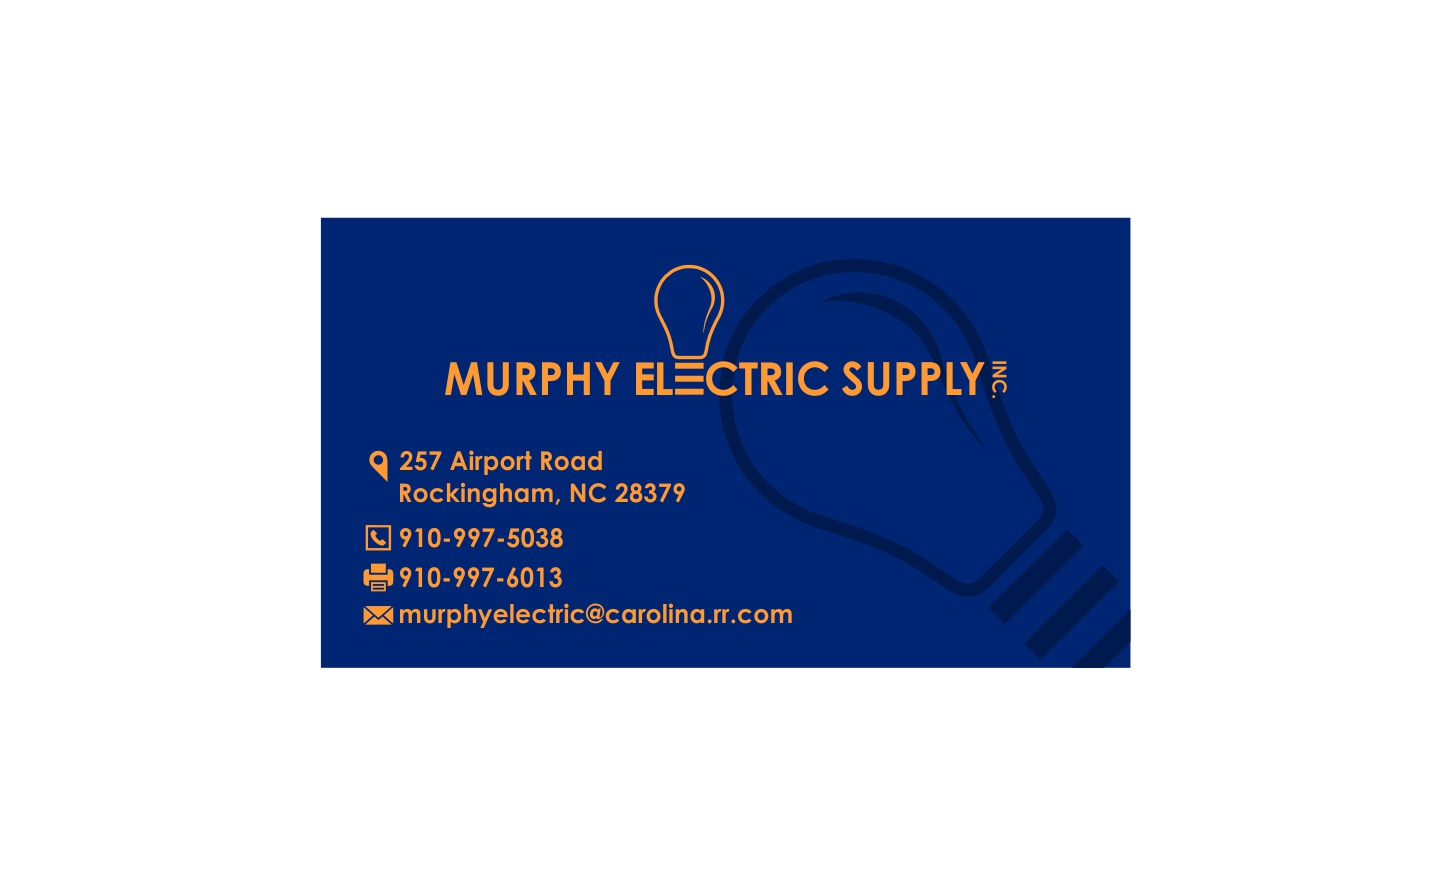 Elegant playful electrical business card design for murphy business card design by dzoker for murphy electric supply inc design 10952574 colourmoves